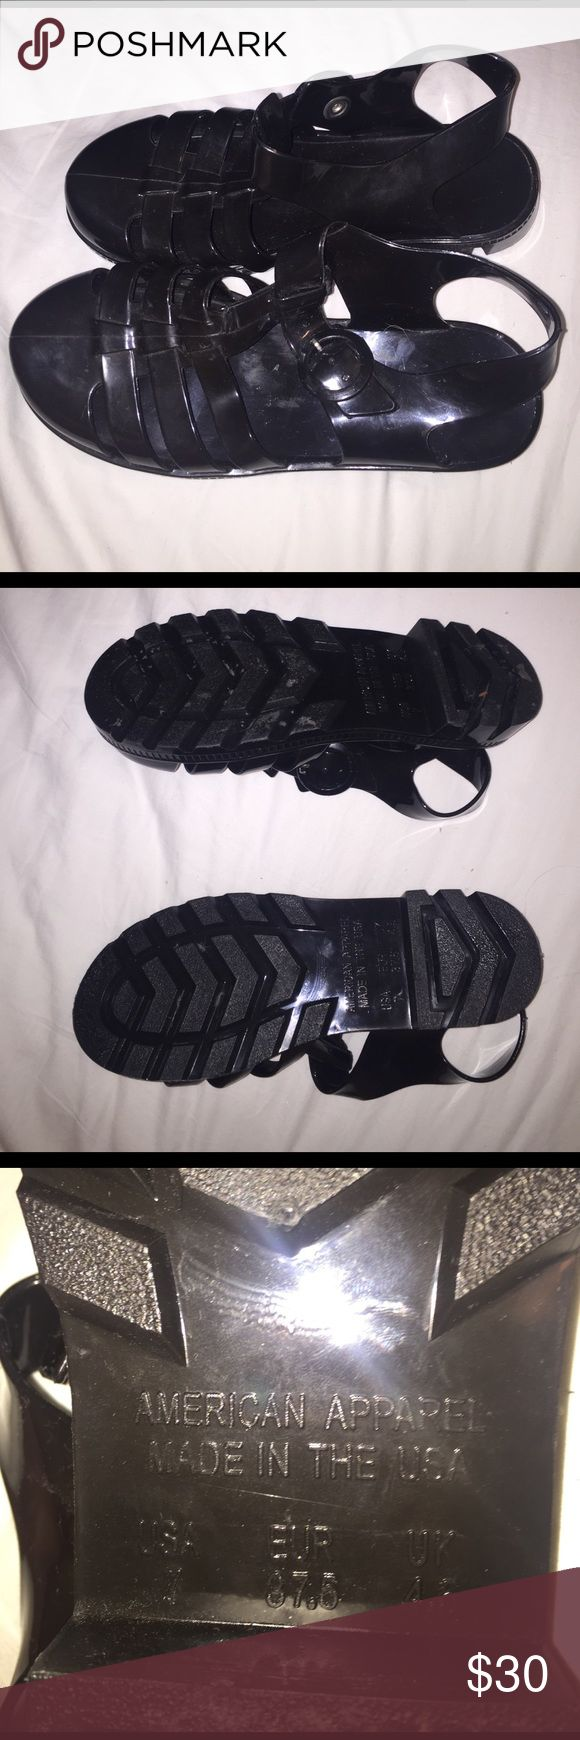 Black jelly sandals american apparel - Jelly Shoes Rarely Worn Jelly Shoes Adjustable Willing To Trade Negotiate American Apparel